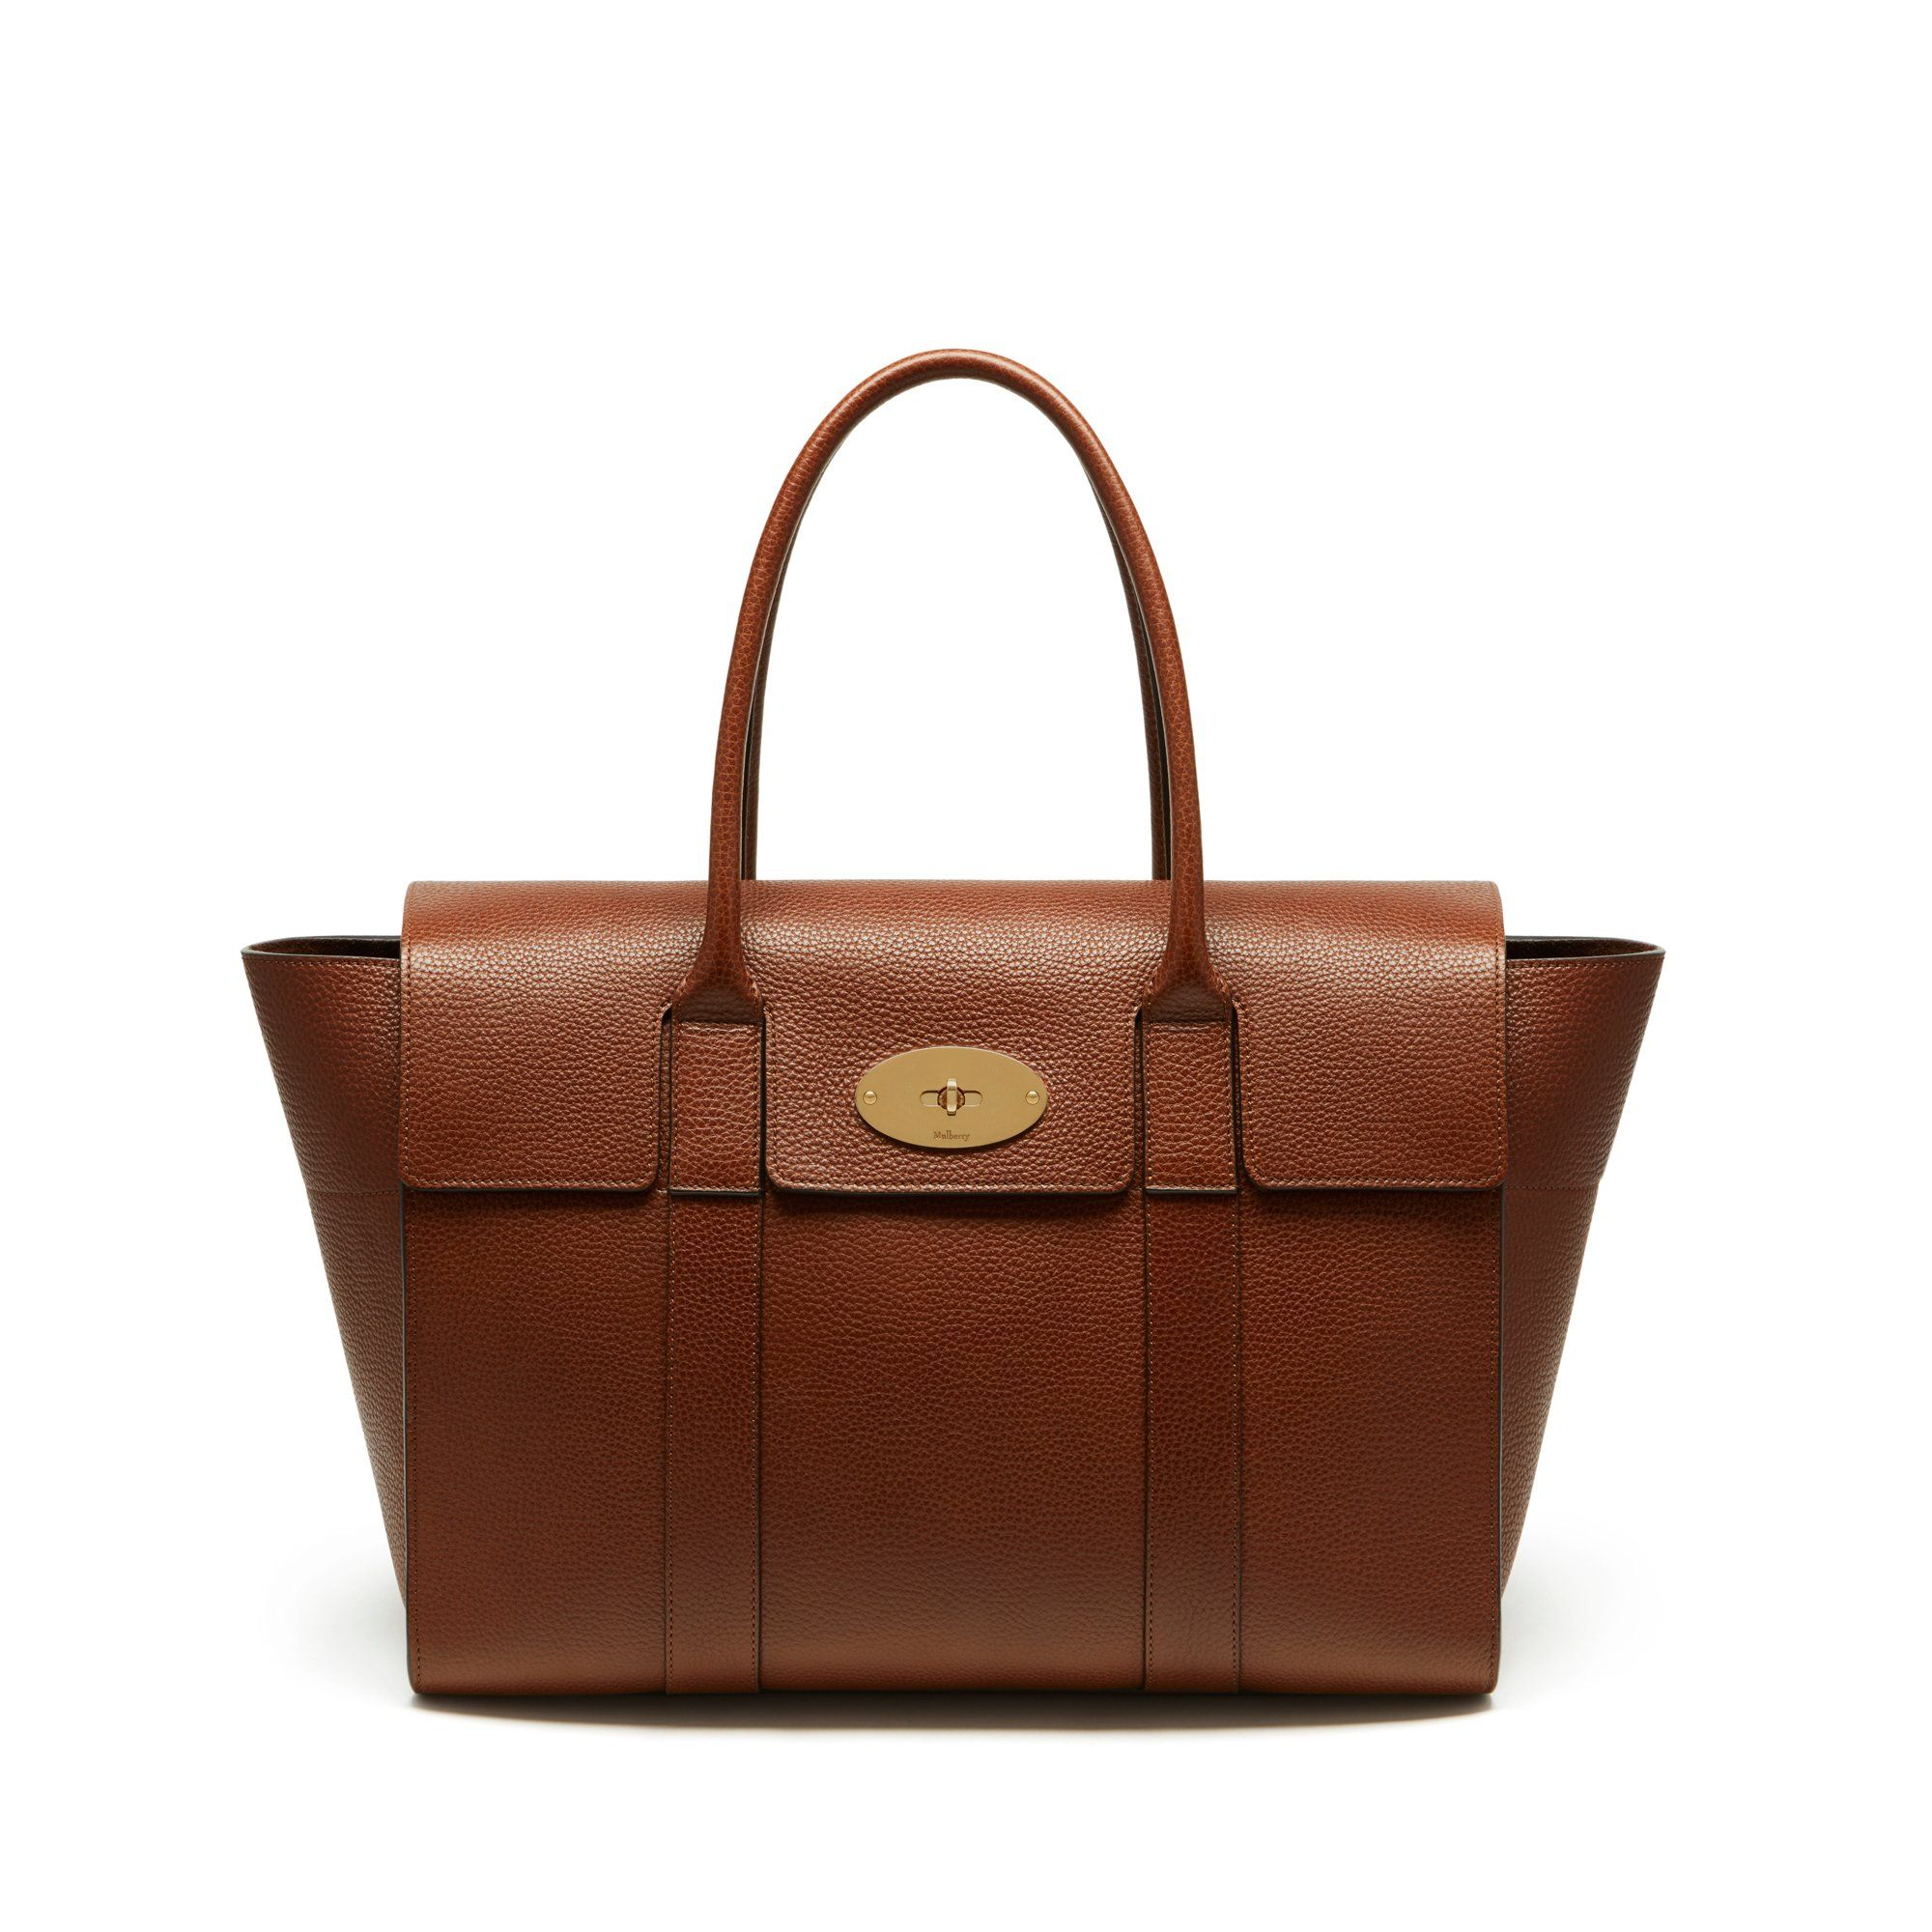 Shop The Mulberry Sale Now Before It's Too Late